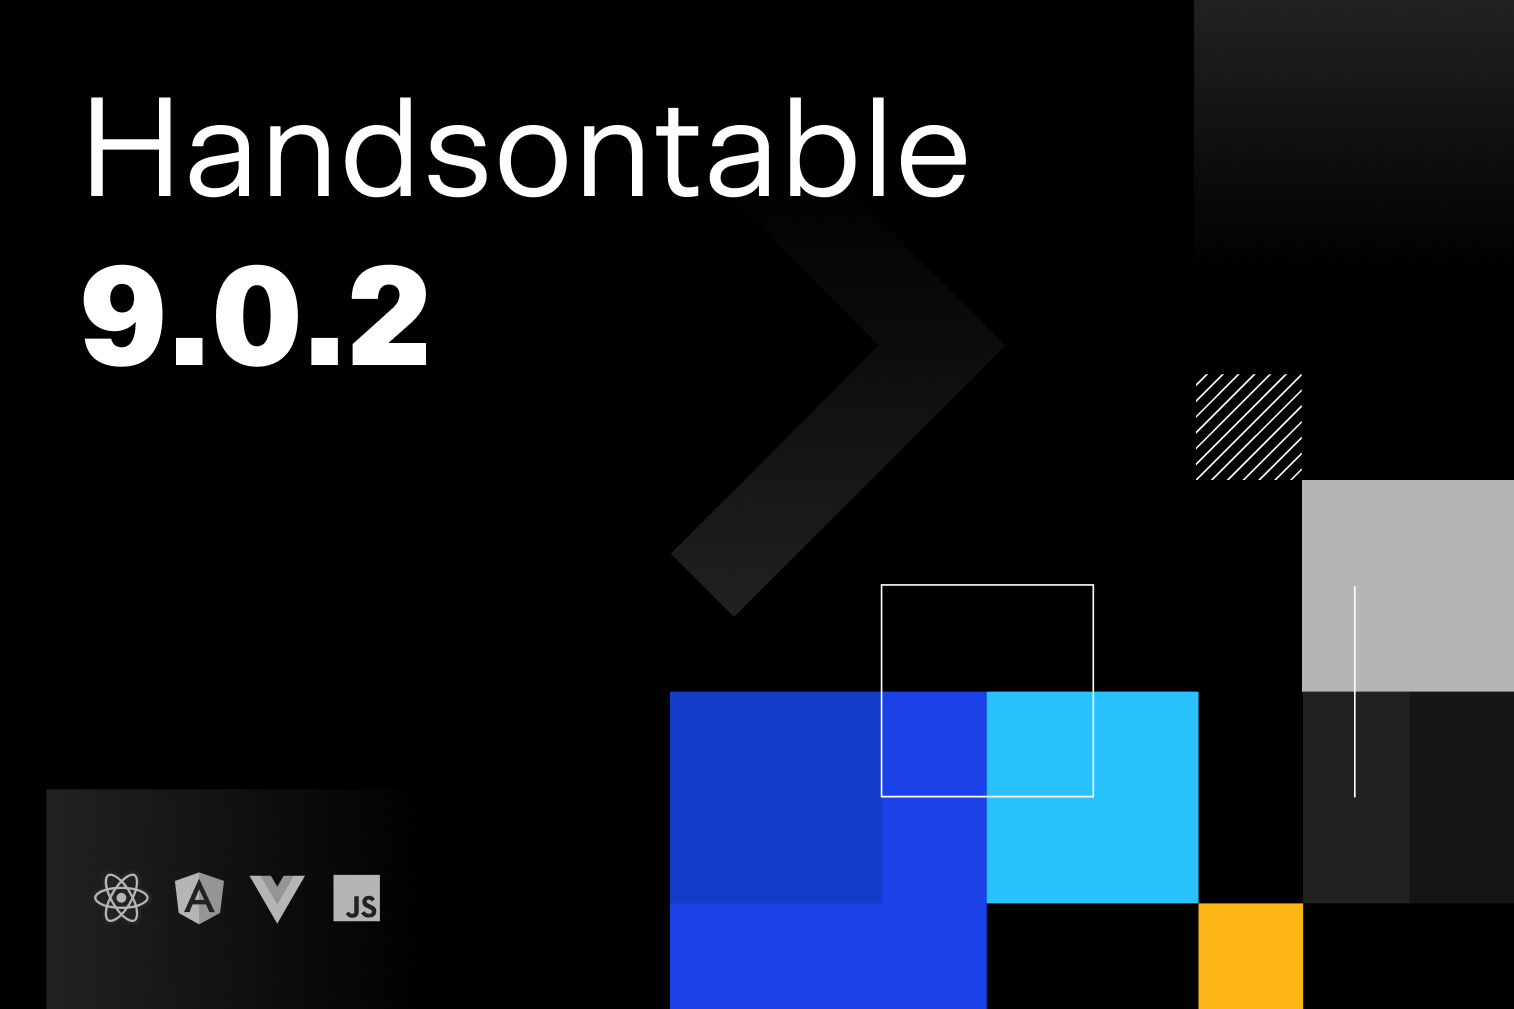 Handsontable 9.0.2 release graphic